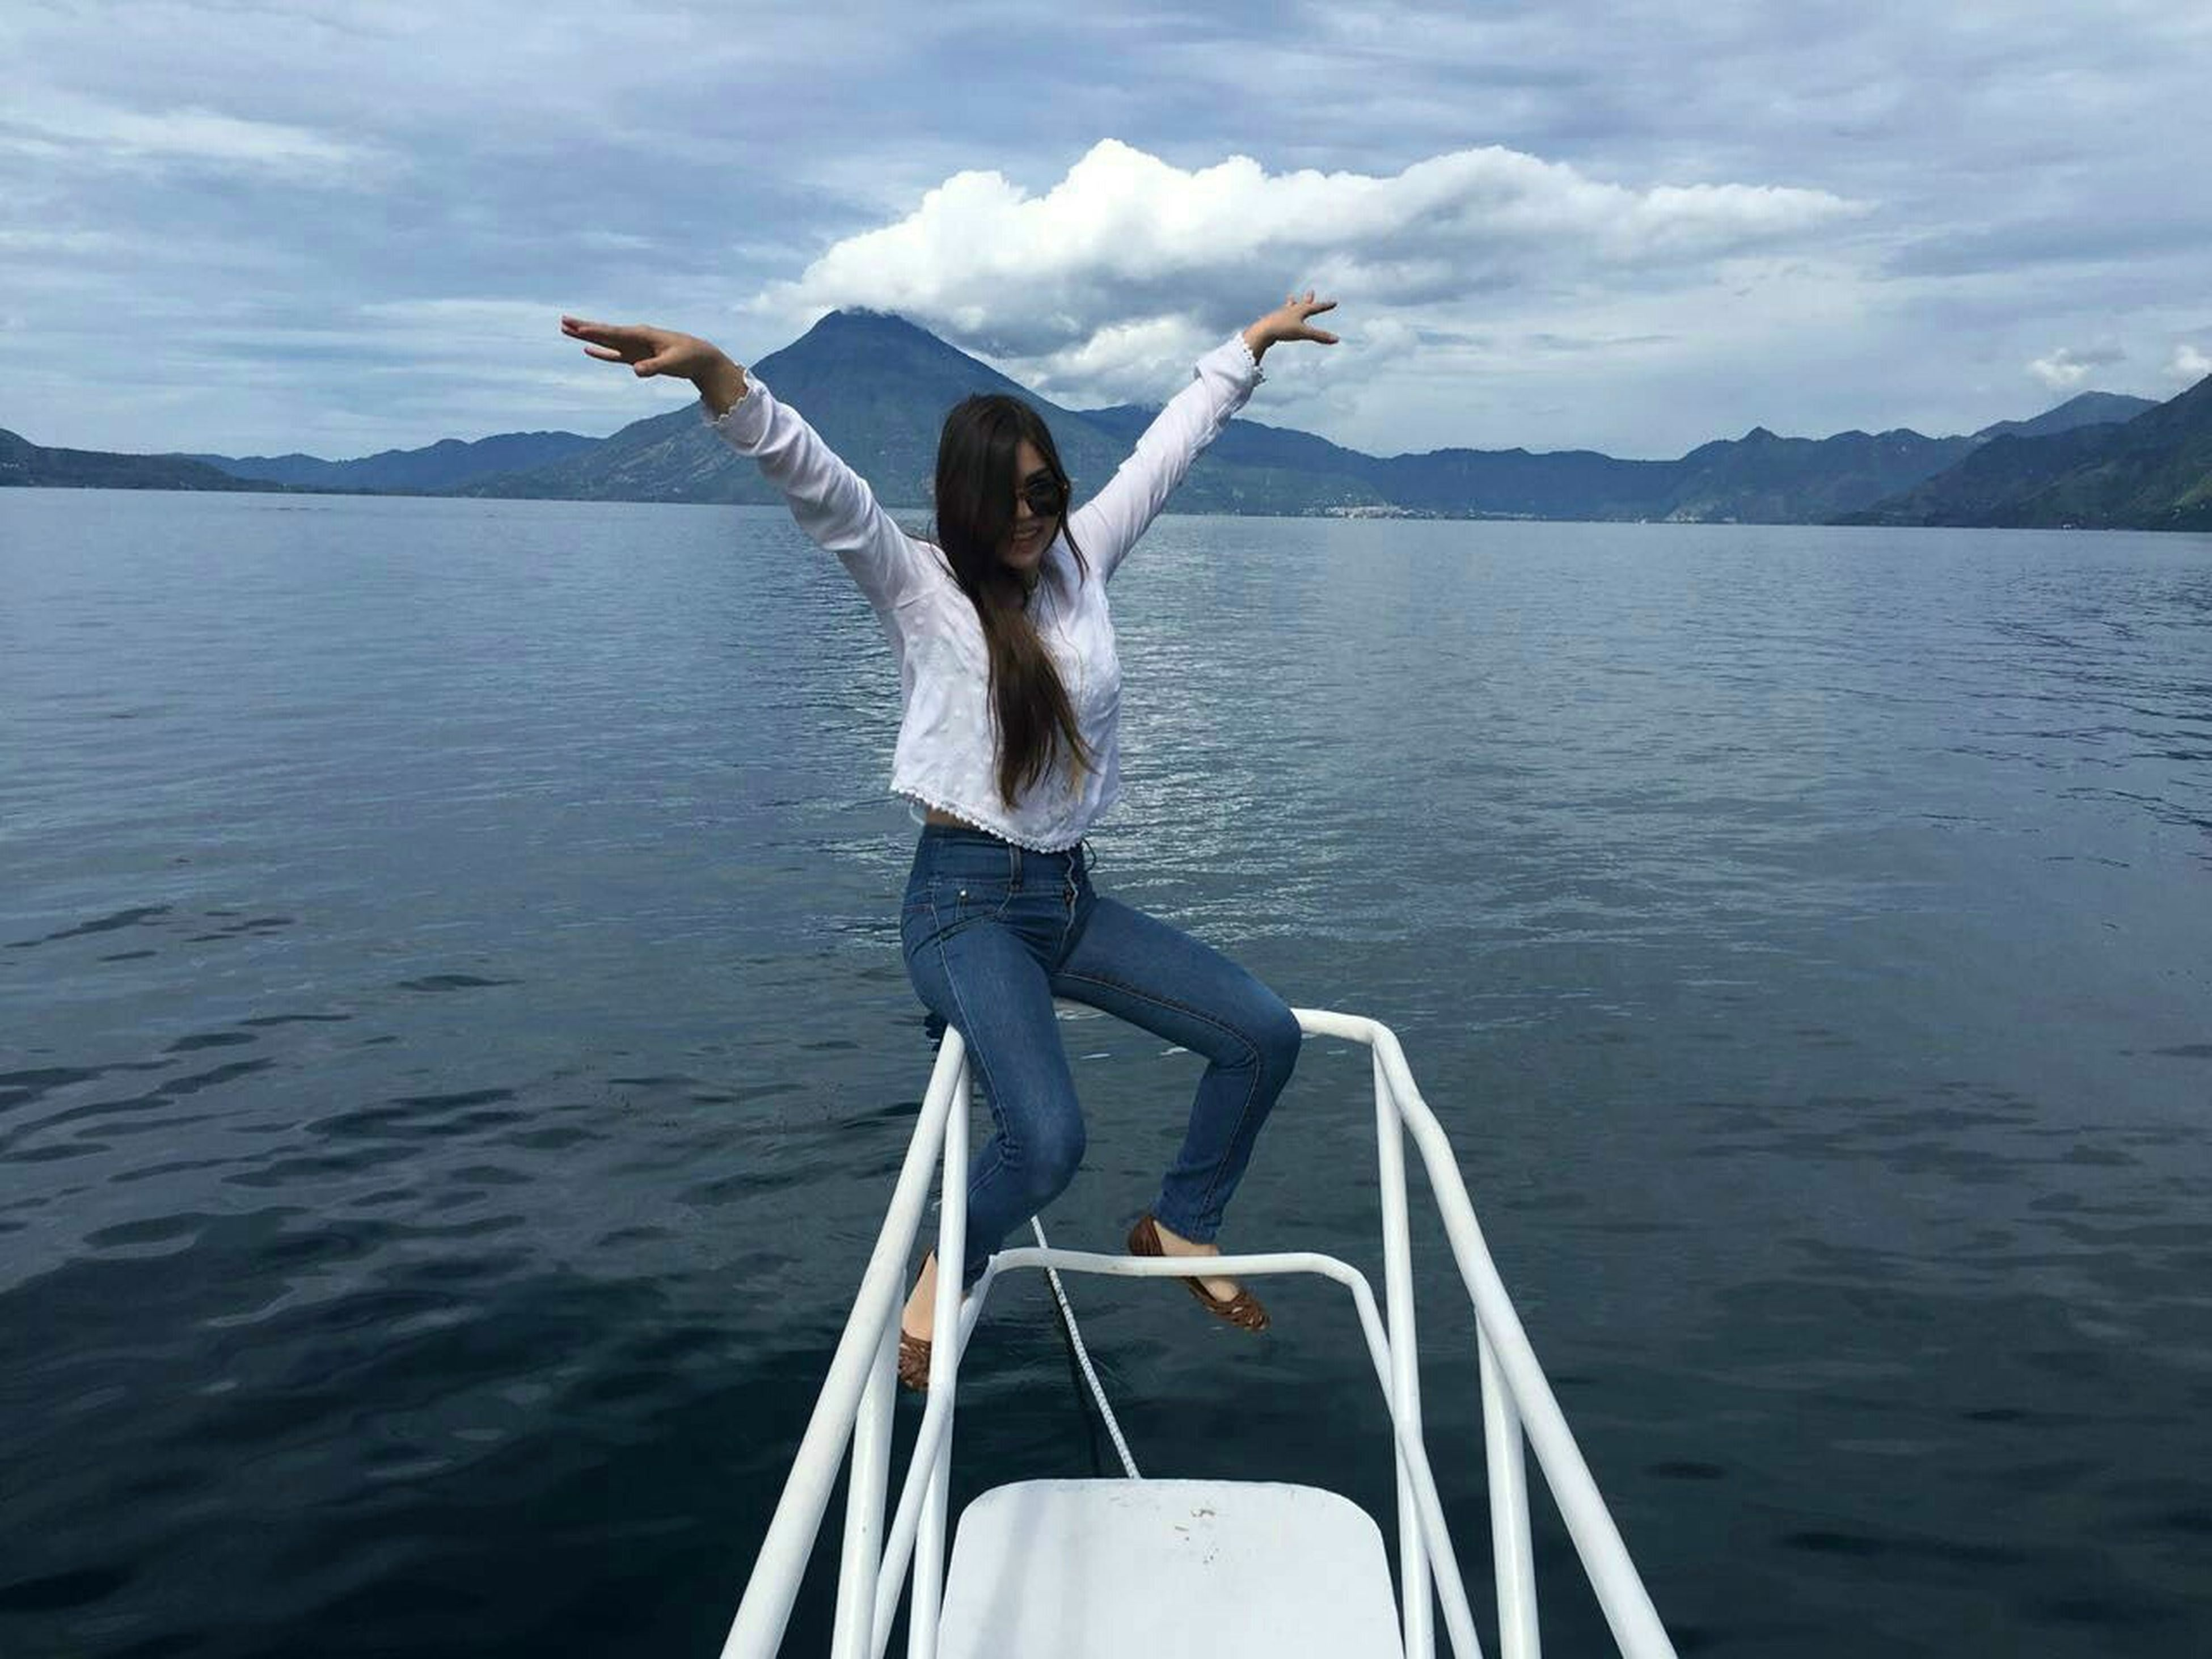 water, sky, nautical vessel, boat, mountain, mode of transport, cloud - sky, lifestyles, leisure activity, cloud, rippled, nature, beauty in nature, scenics, tranquility, jumping, outdoors, tranquil scene, sailing, mountain range, day, cloudy, vacations, part of, idyllic